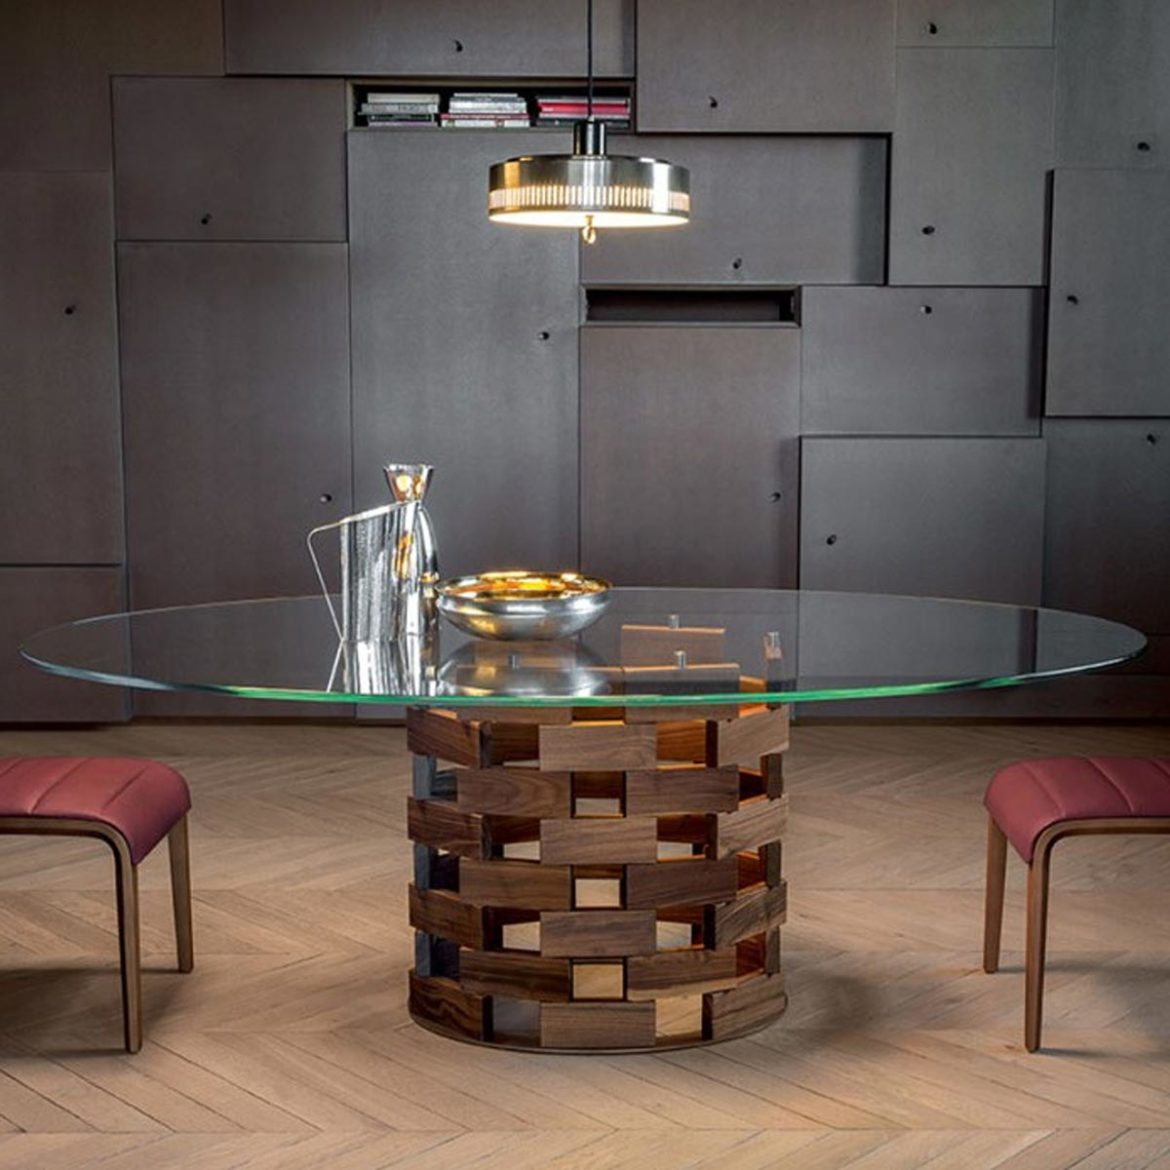 Collosseo dining table - tonic casa